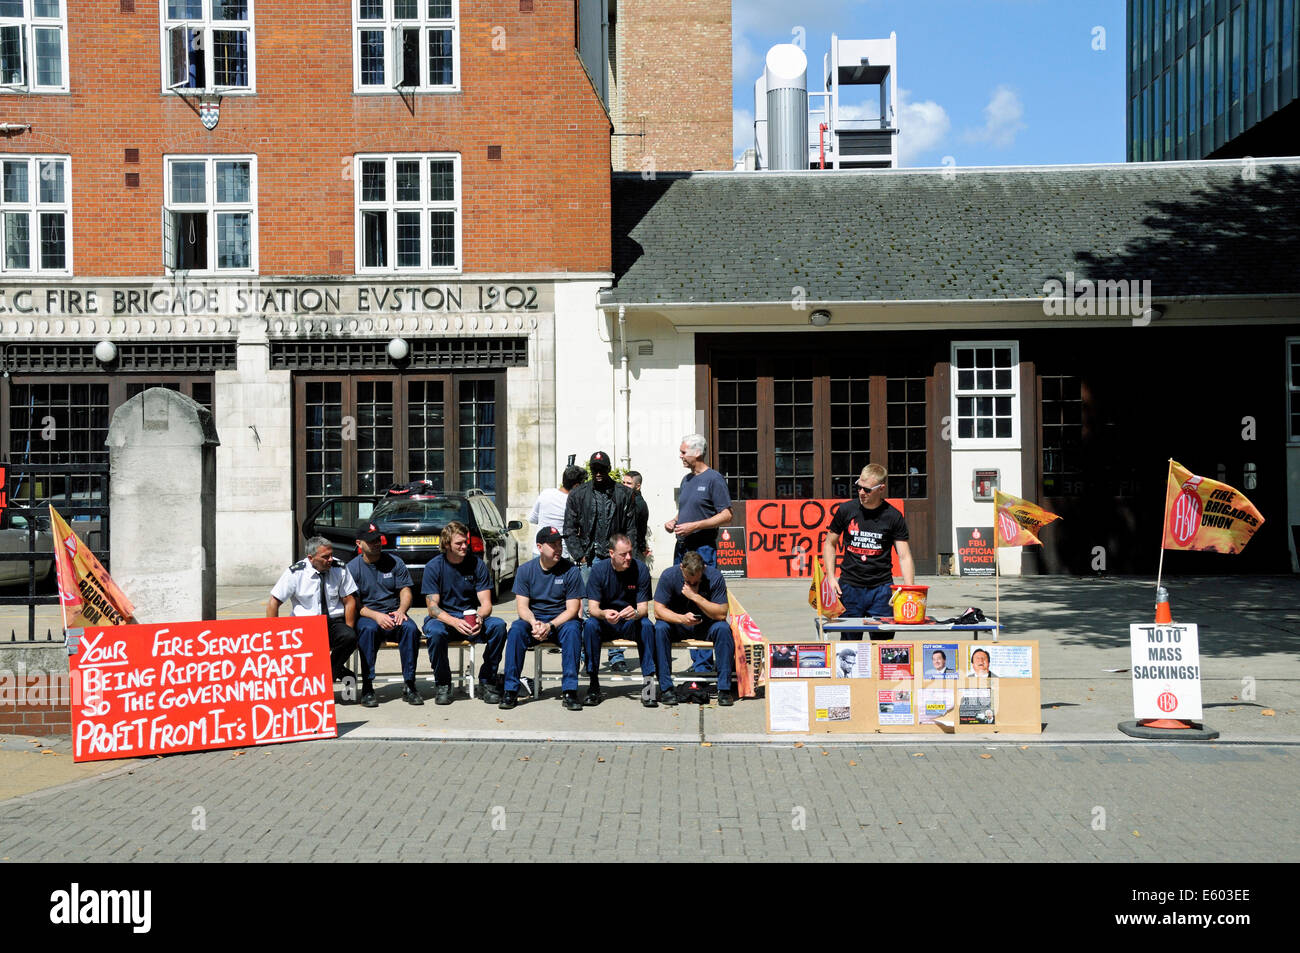 Striking firefighter on picket line outside fire station Euston Road Central London, England Britain UK Saturday - Stock Image